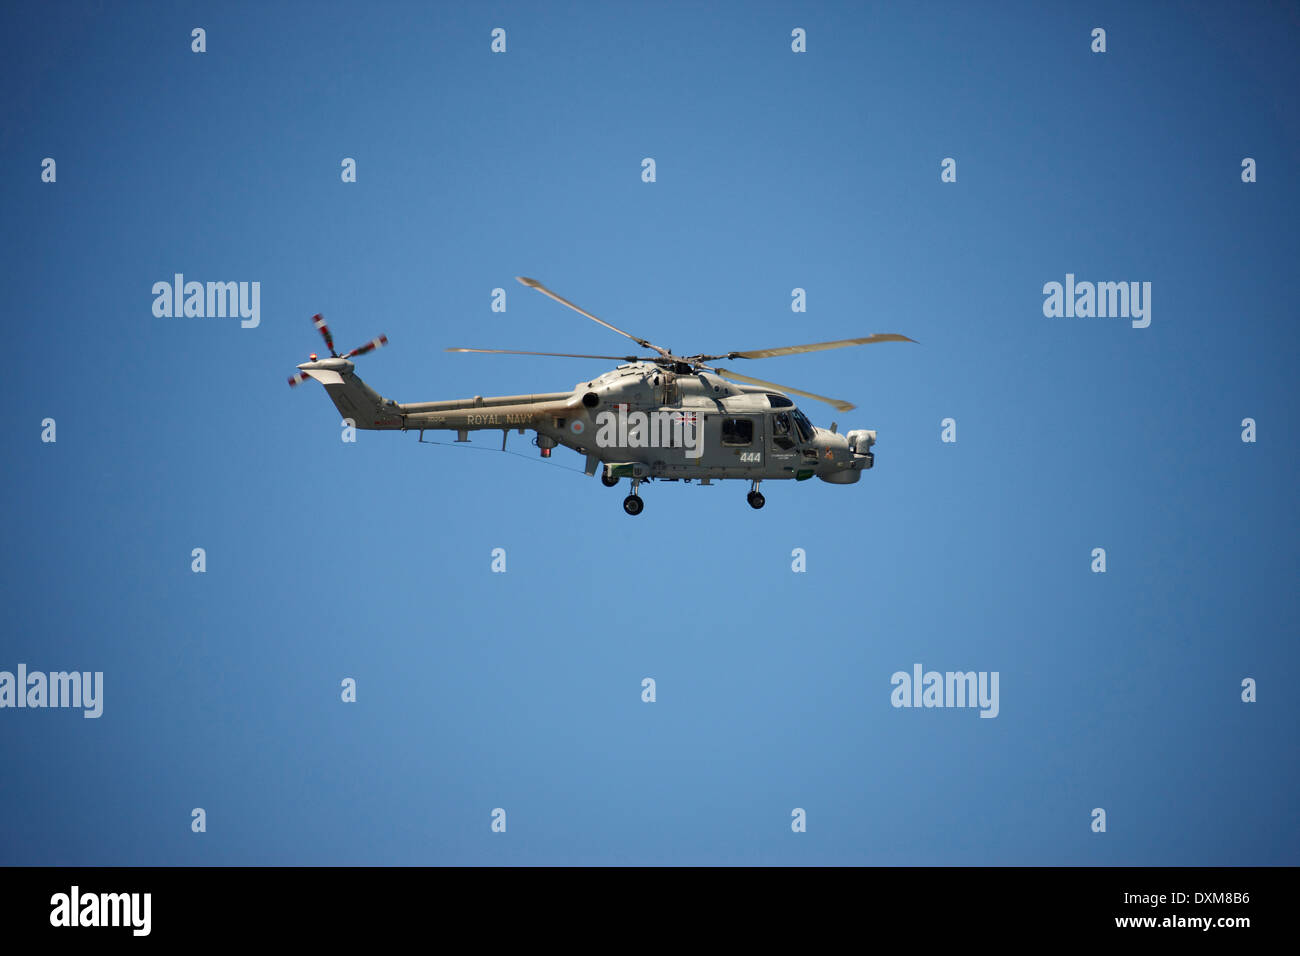 South Africa, Military helicopter,mid-air - Stock Image